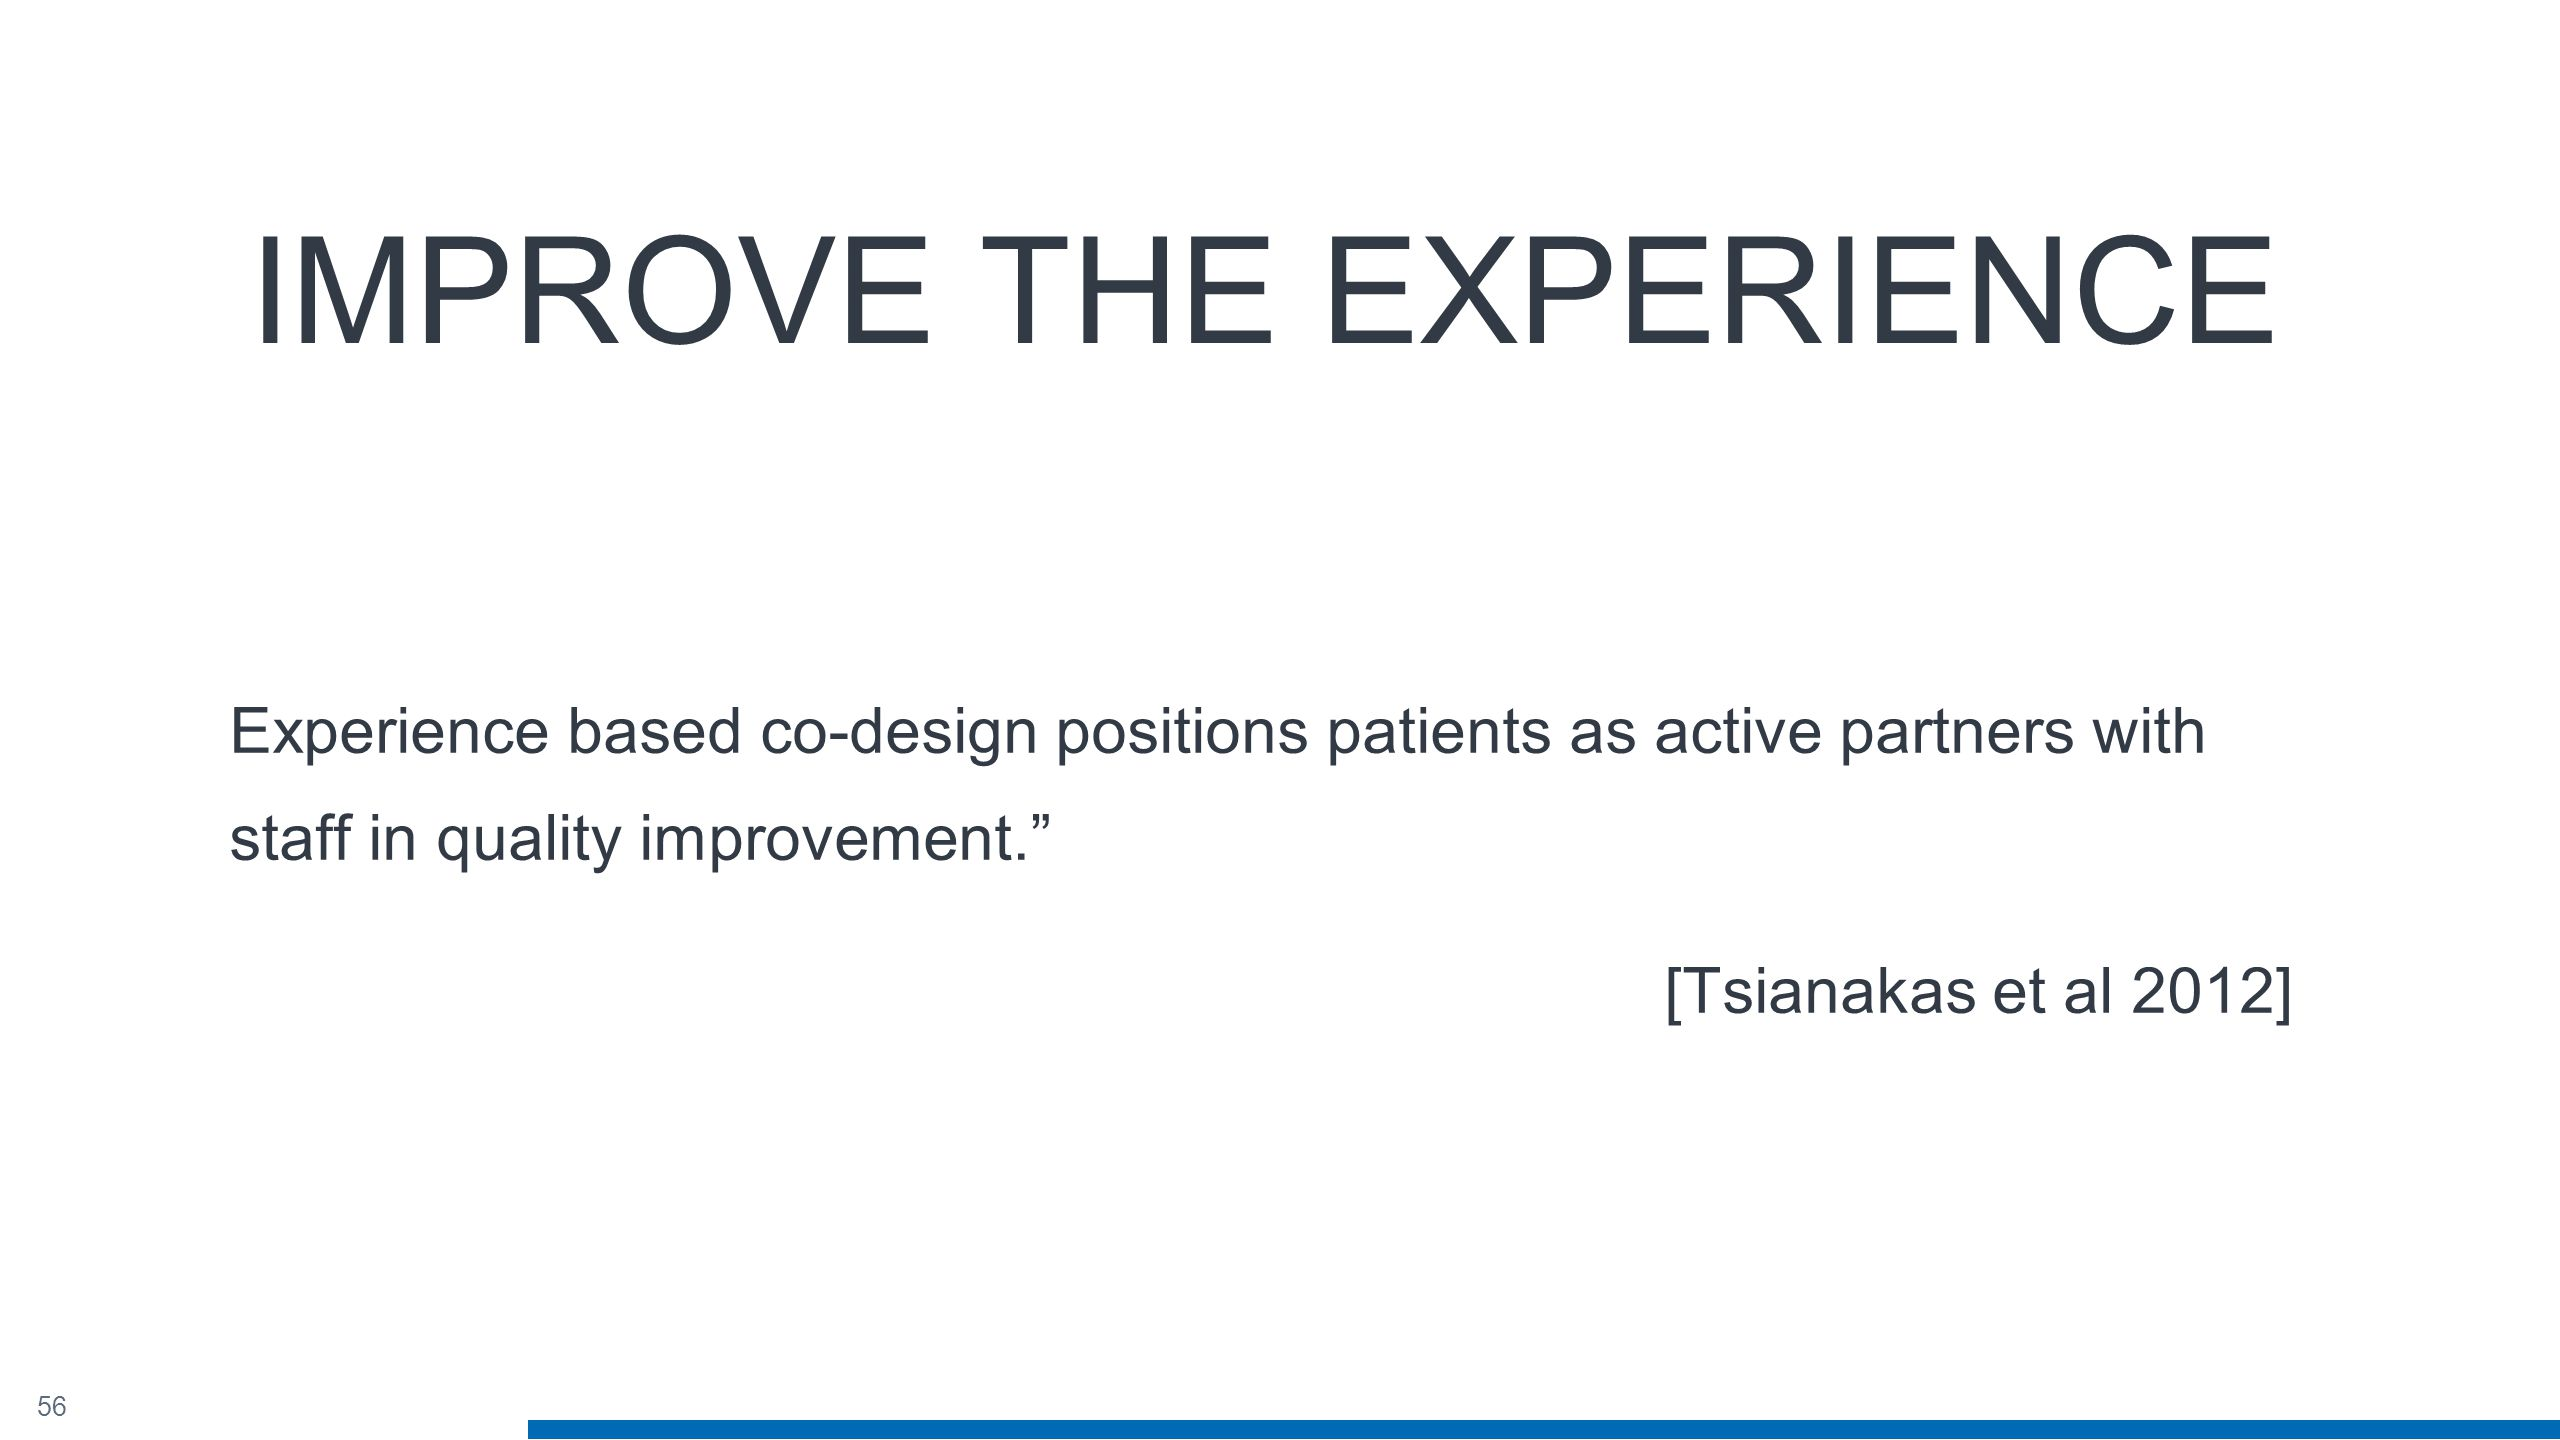 56 IMPROVE THE EXPERIENCE Experience based co-design positions patients as active partners with staff in quality improvement. [Tsianakas et al 2012]